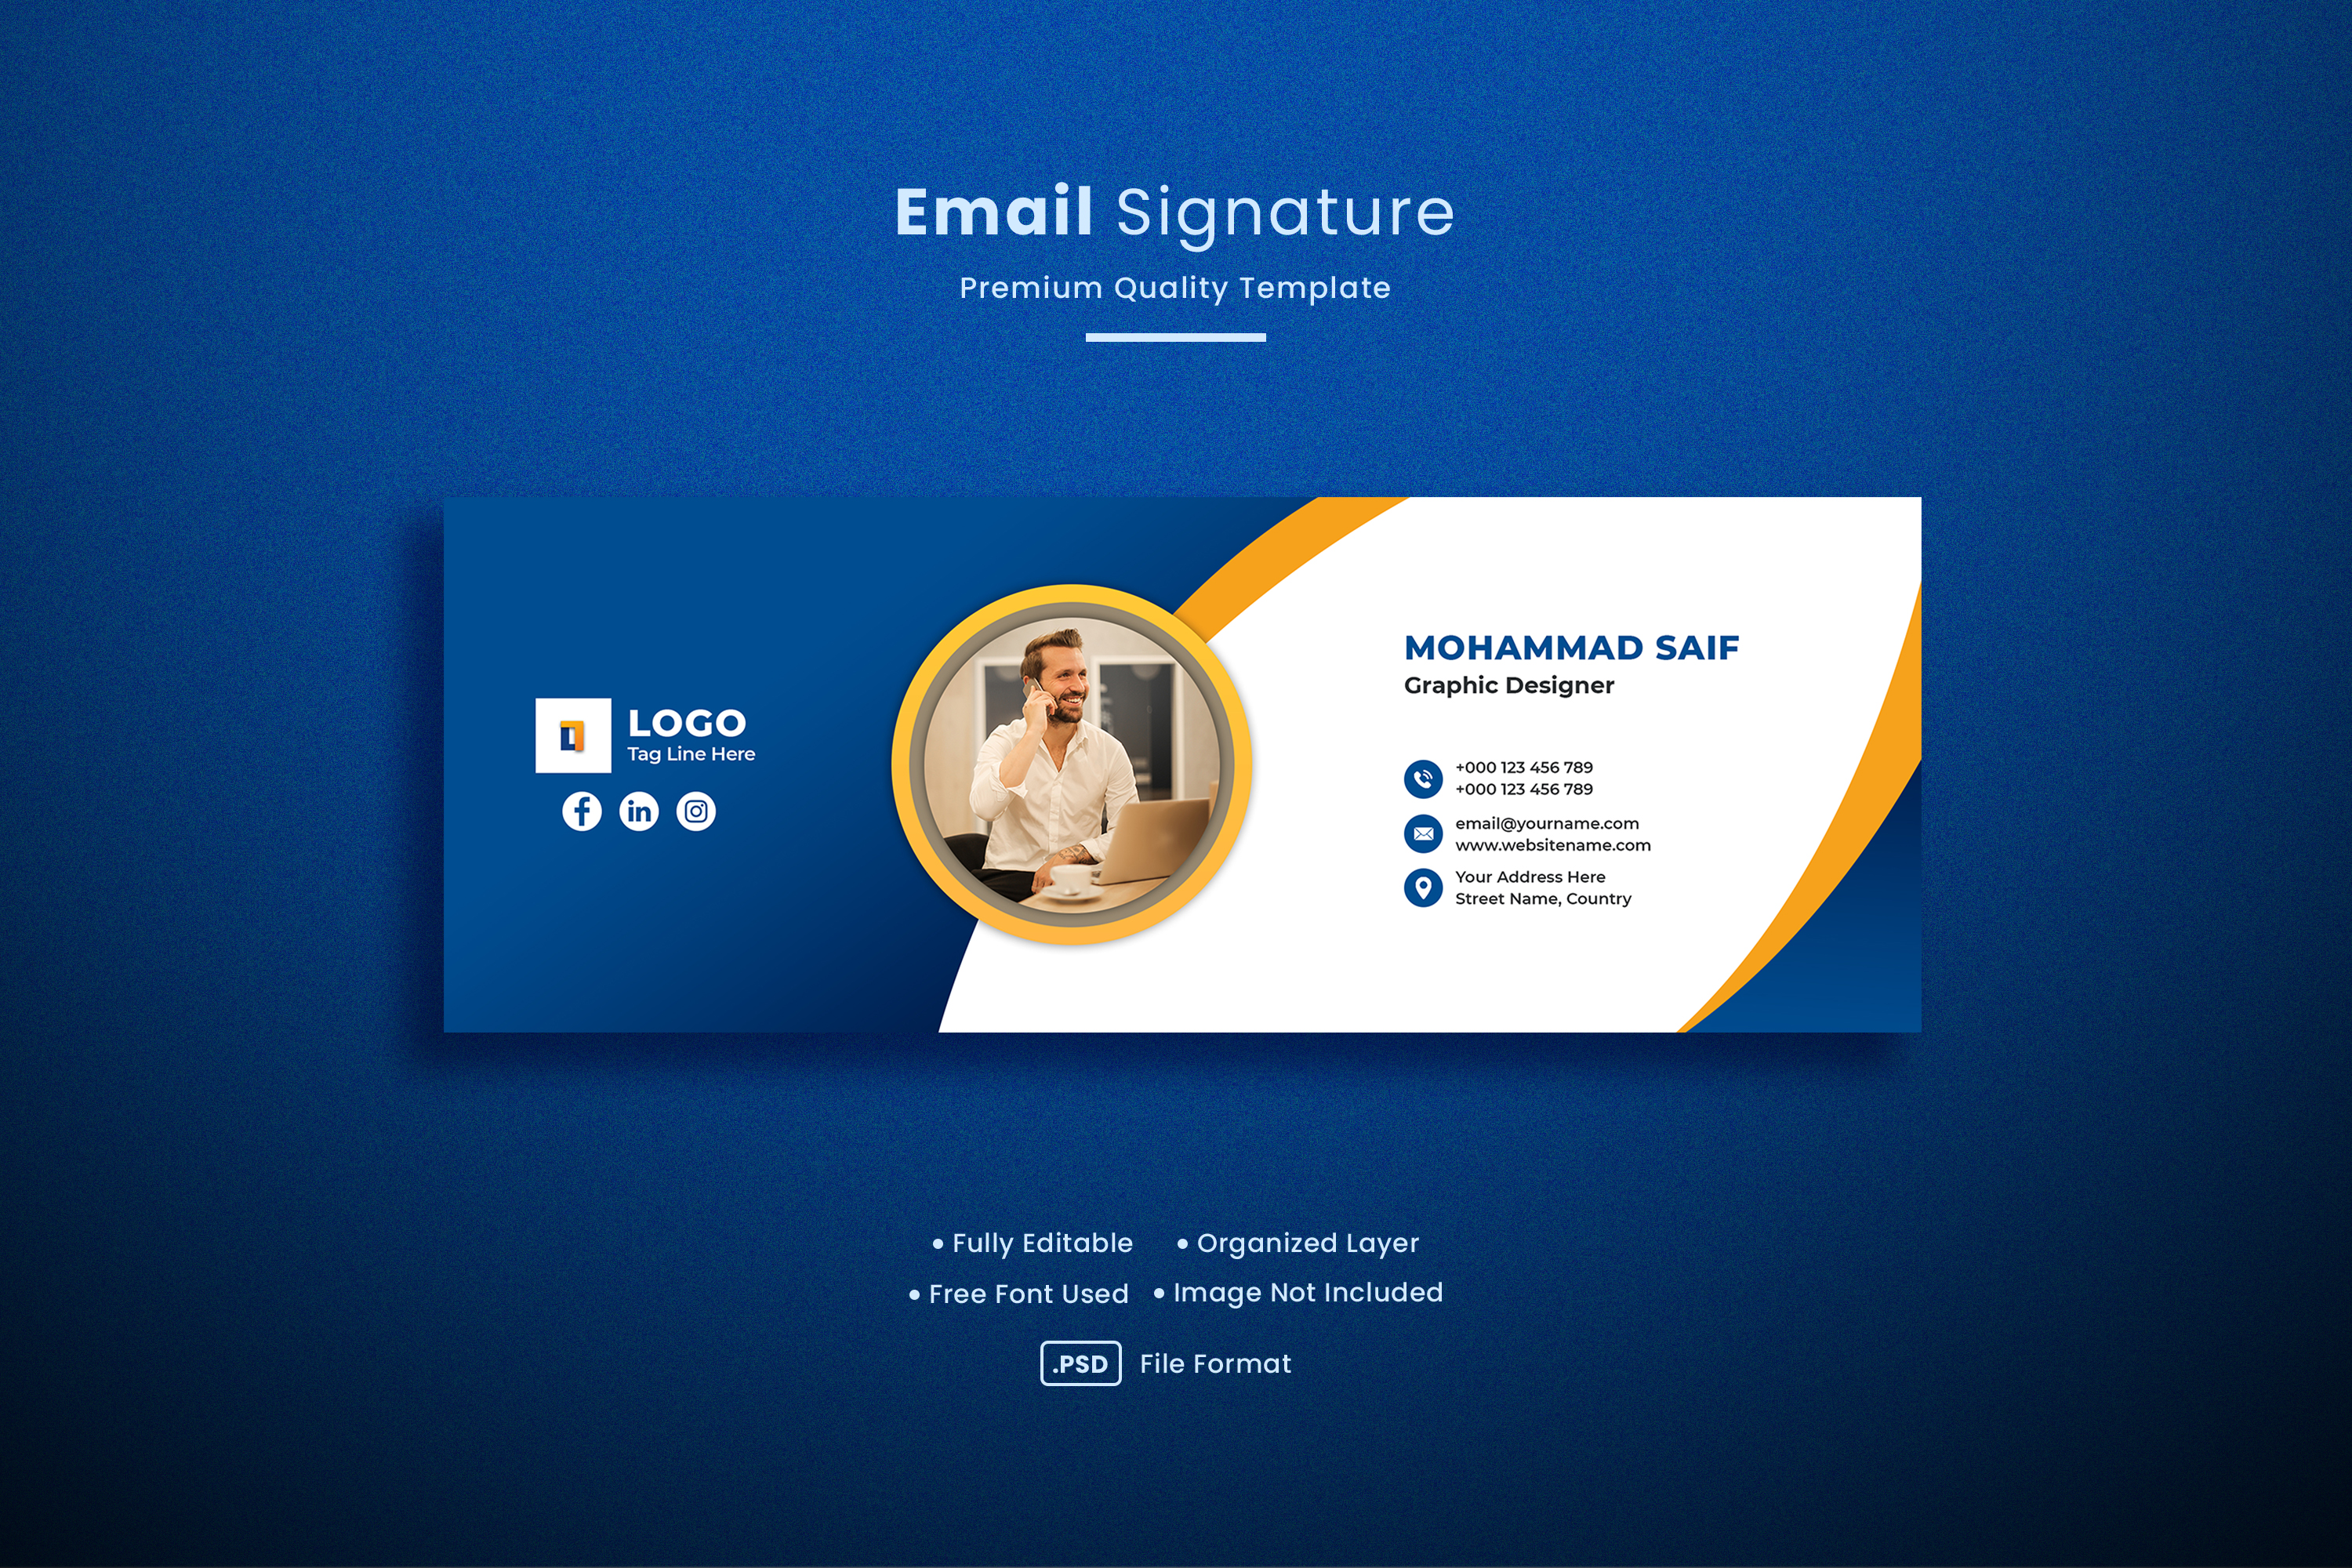 Email Signature Template for Business